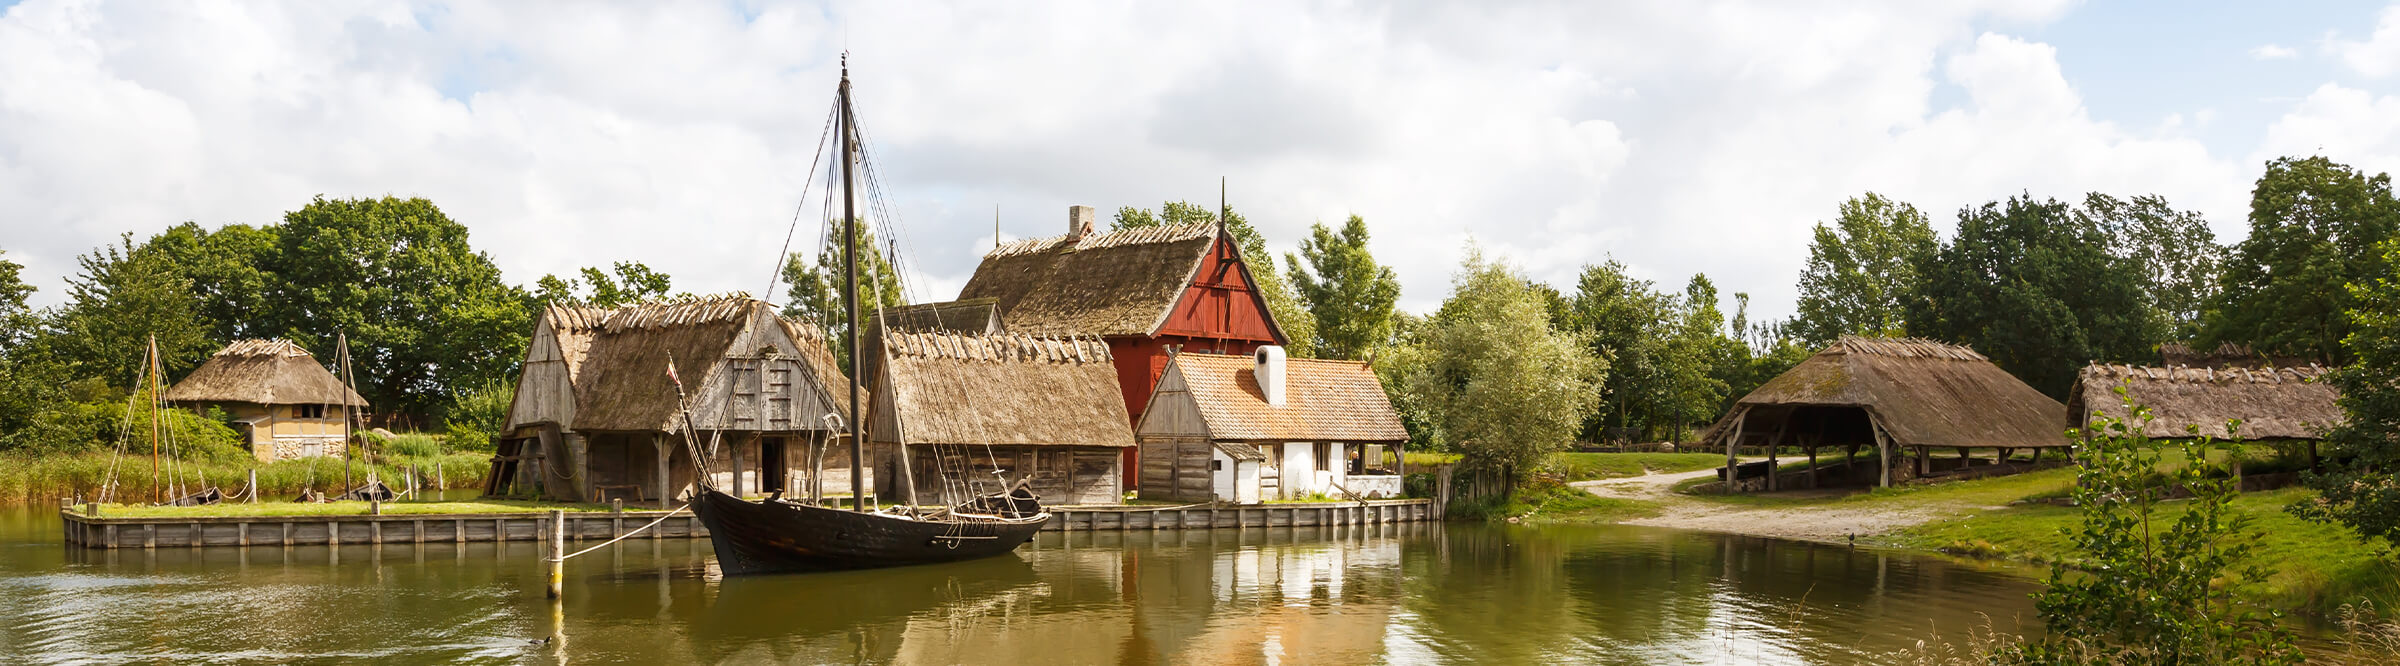 The medieval houses and boats in The Middle Ages Center, the experimental living history museum in Sundby Lolland, Denmark.